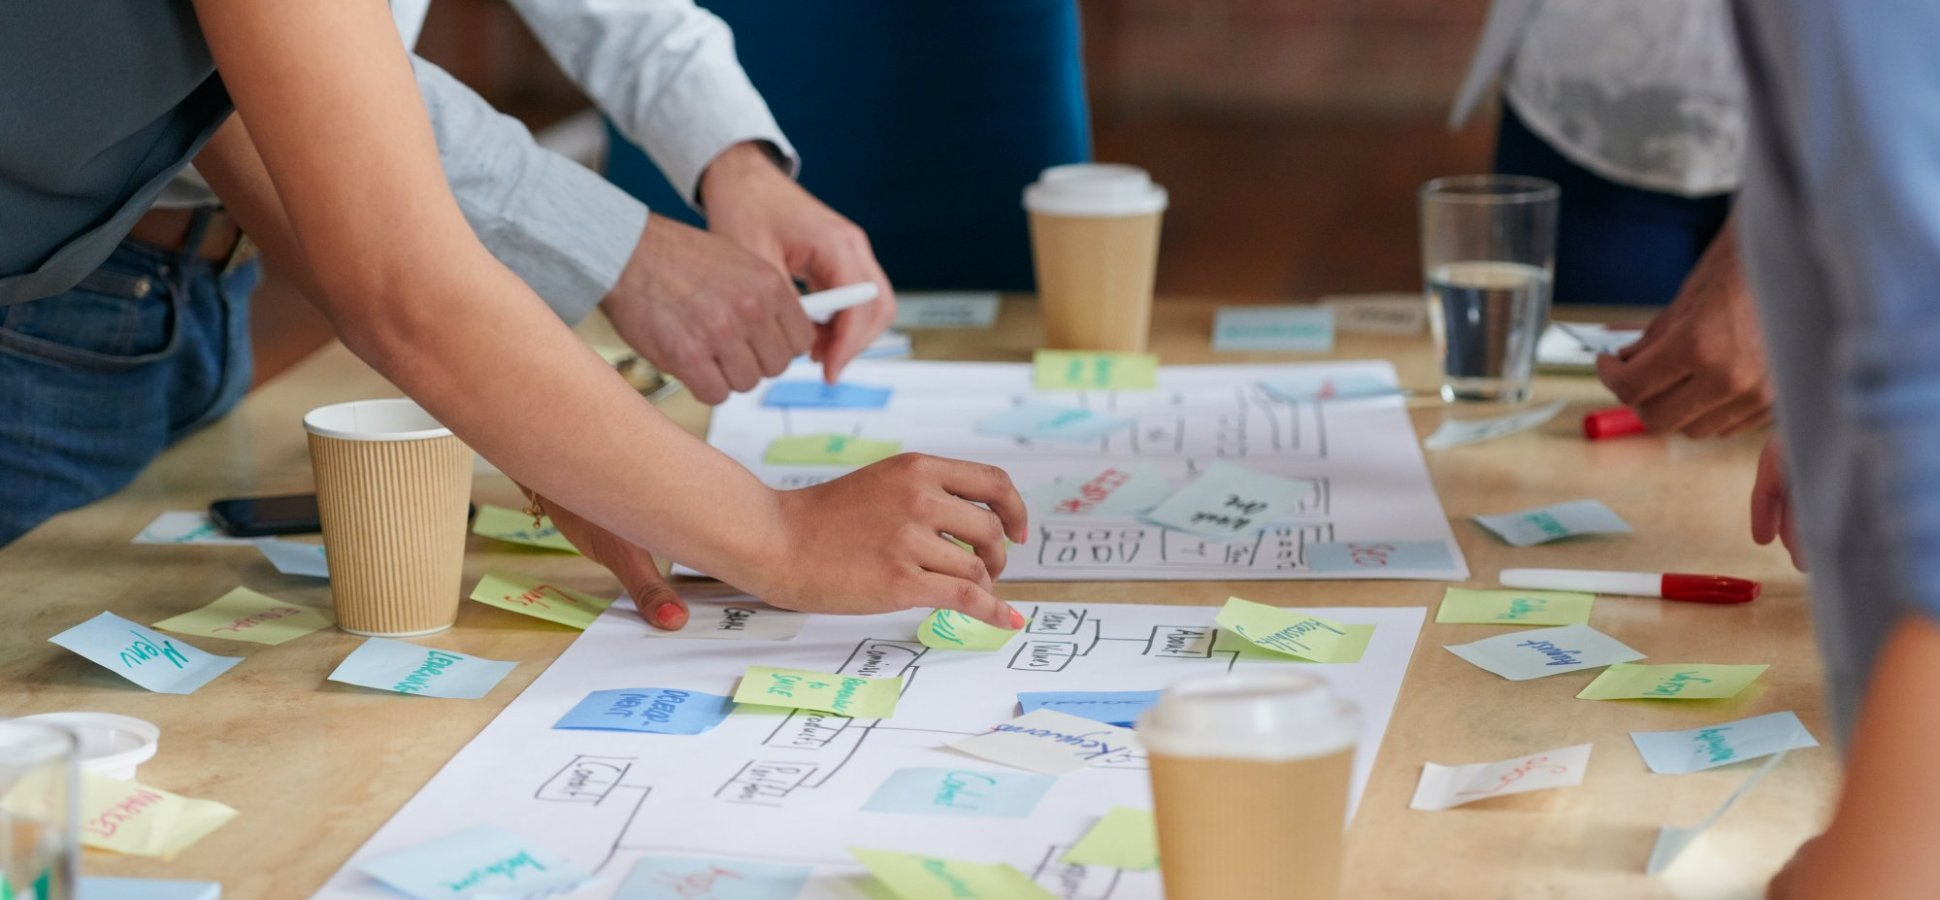 Need to Create Energy at Your Next Meeting? 8 Exercises That Will Break the Ice and Build Teamwork